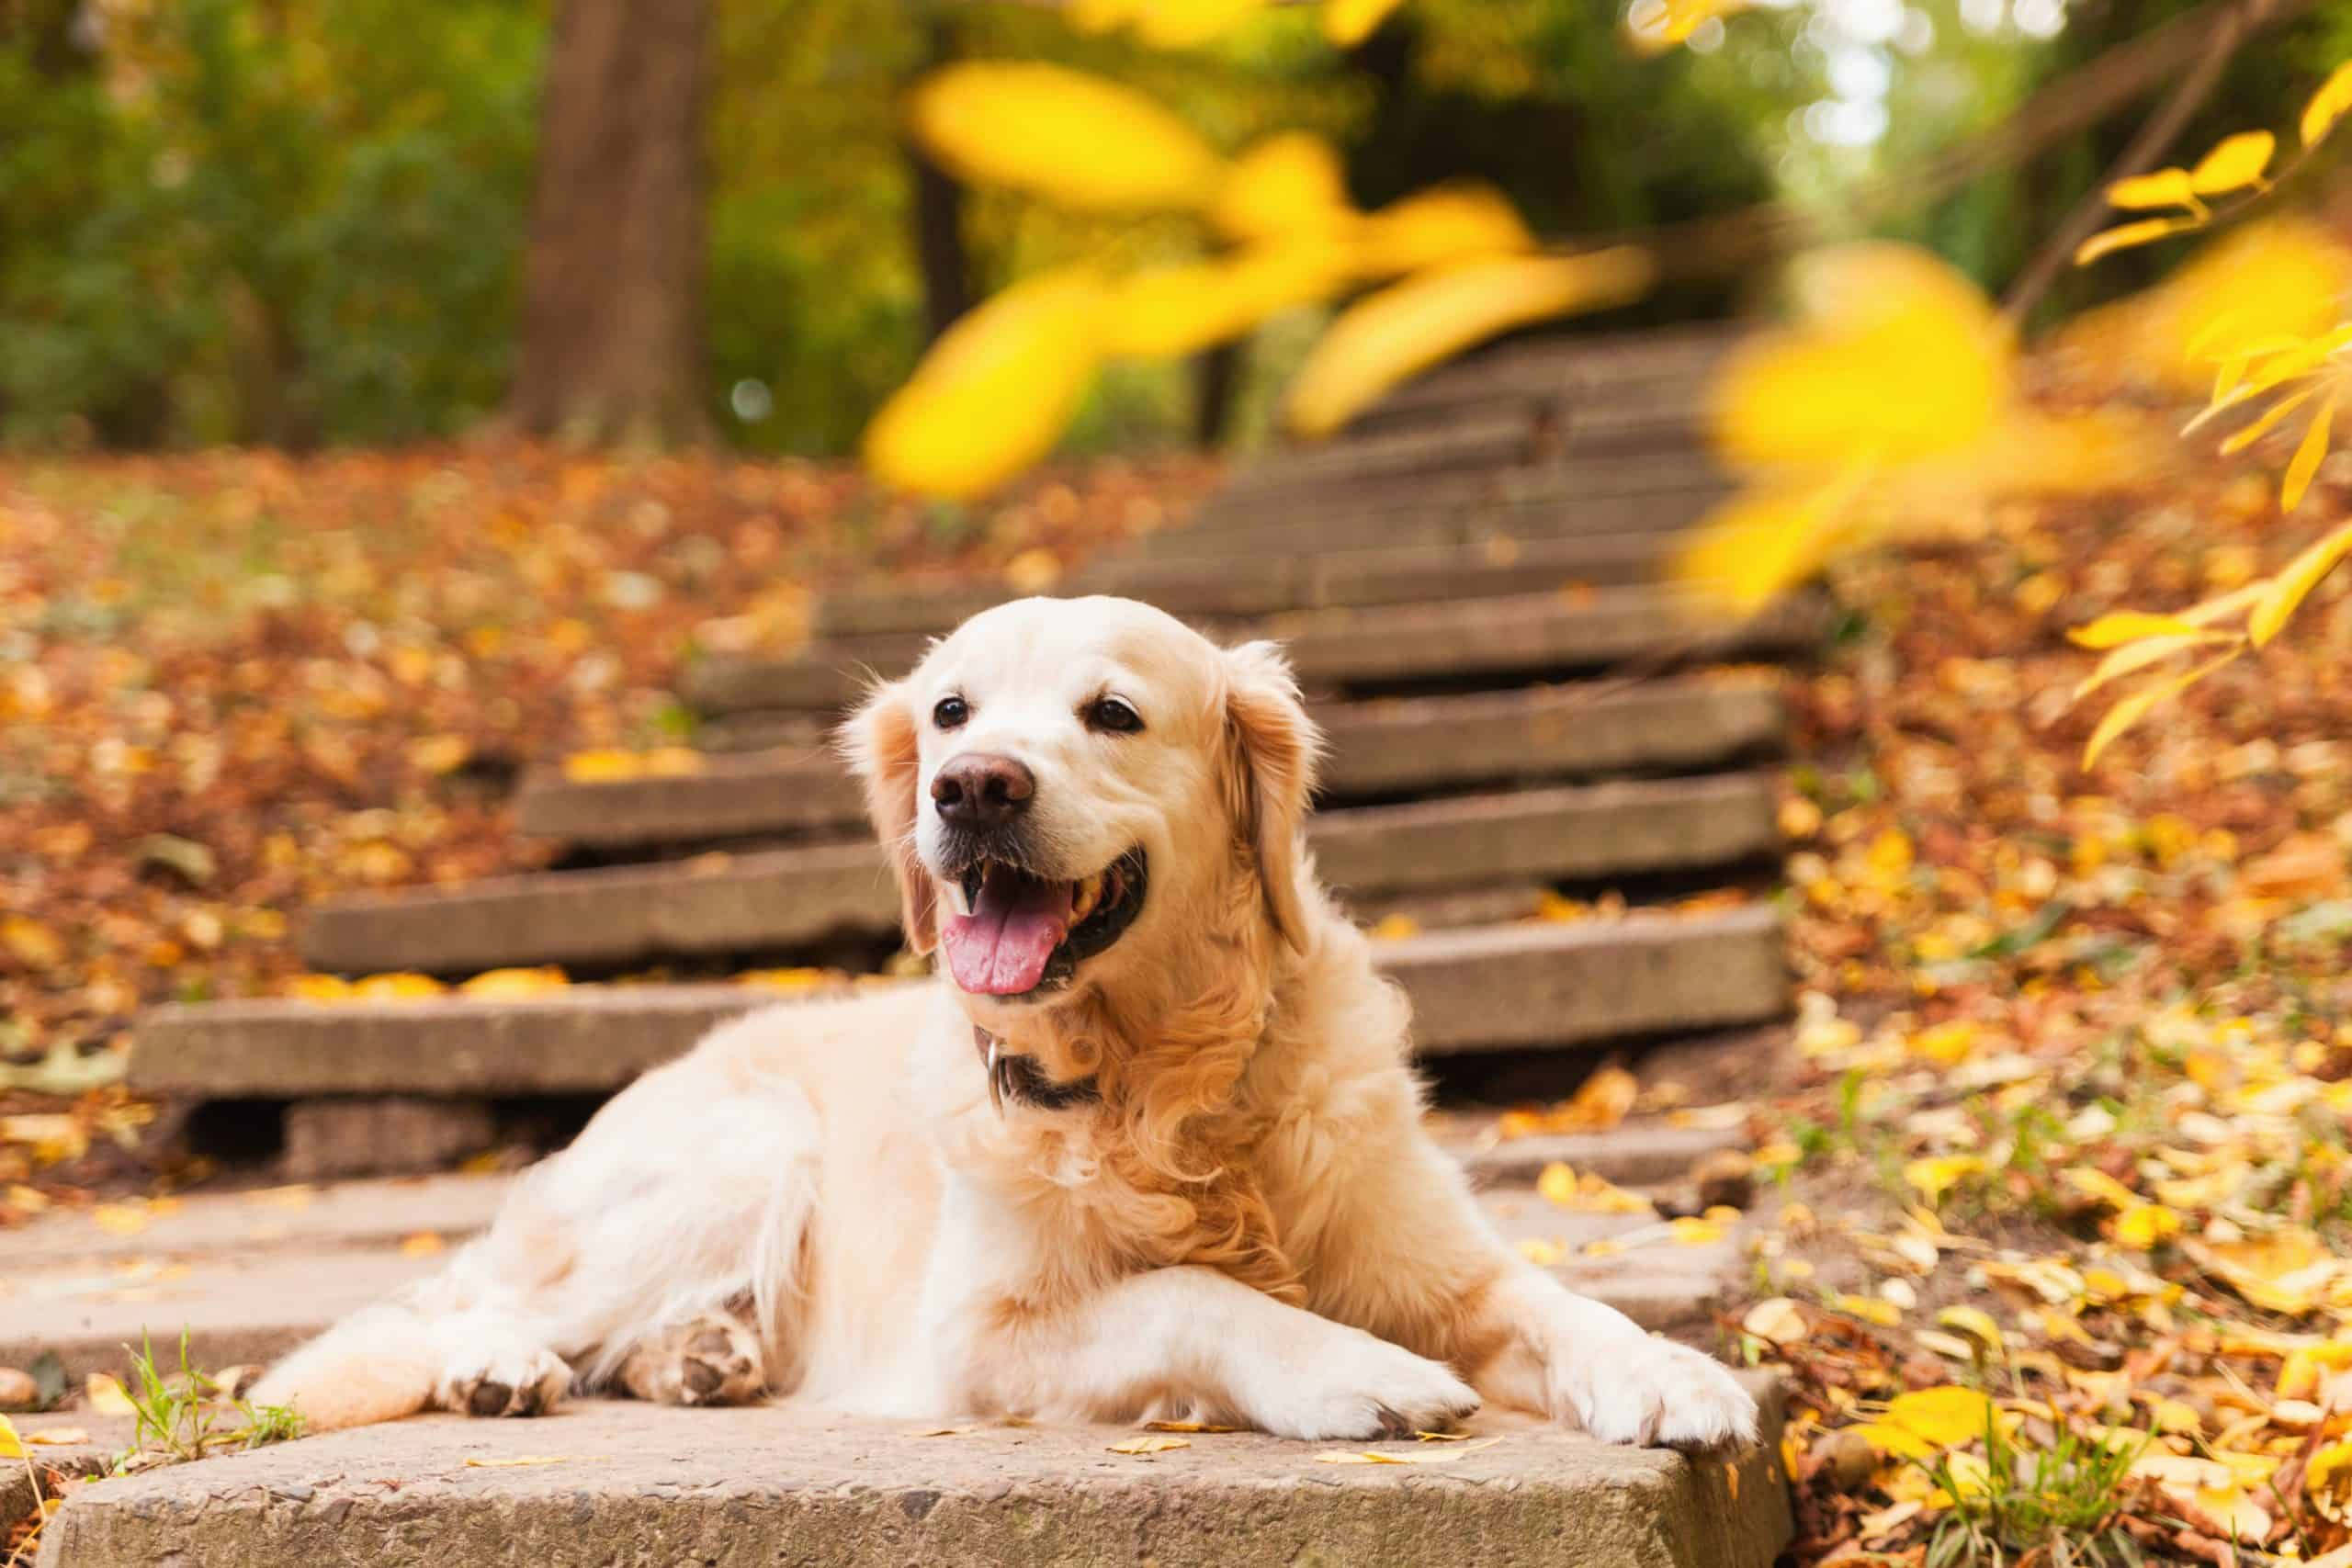 Adorable young golden retriever puppy dog sitting on concrete stairs near fallen yellow leaves. Autumn in park. Horizontal, copy space. Pets care concept; how do you pick your name for your puppy?